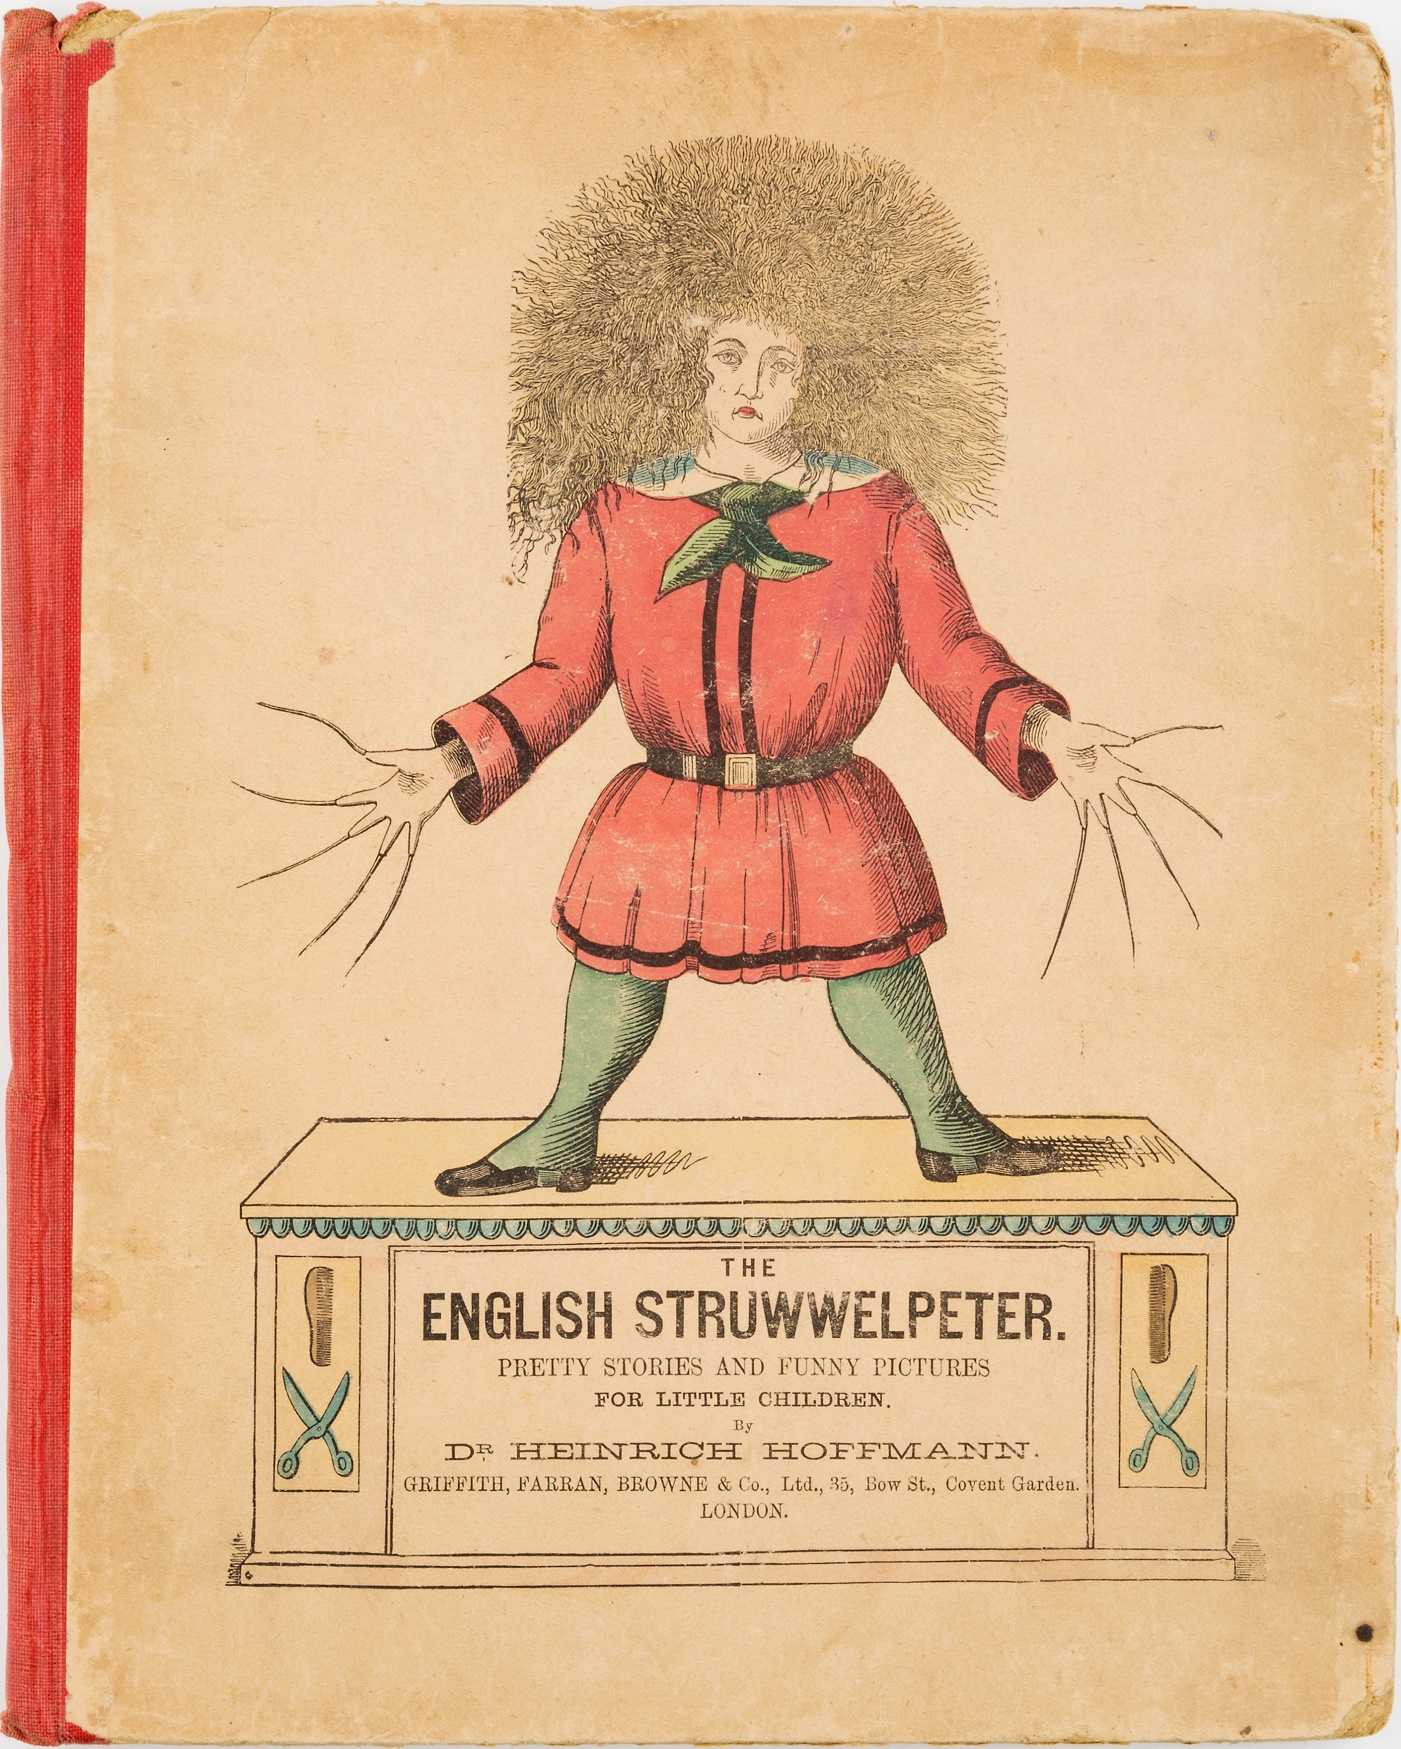 'The English Struwwelpeter' by Dr Heinrich Hoffman, c. late 1800s.